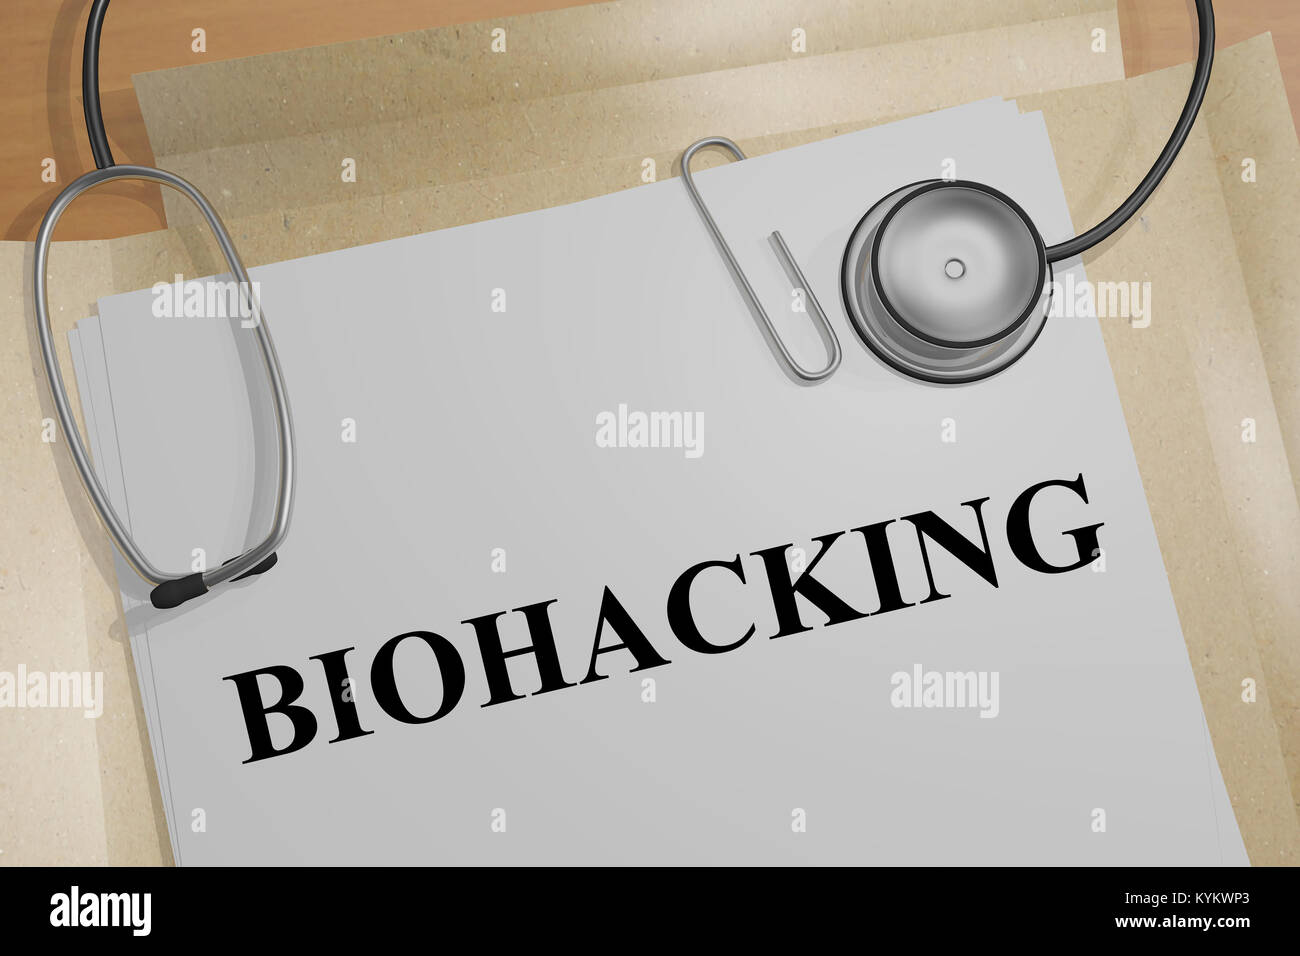 Biohacking Stock Photos & Biohacking Stock Images - Alamy